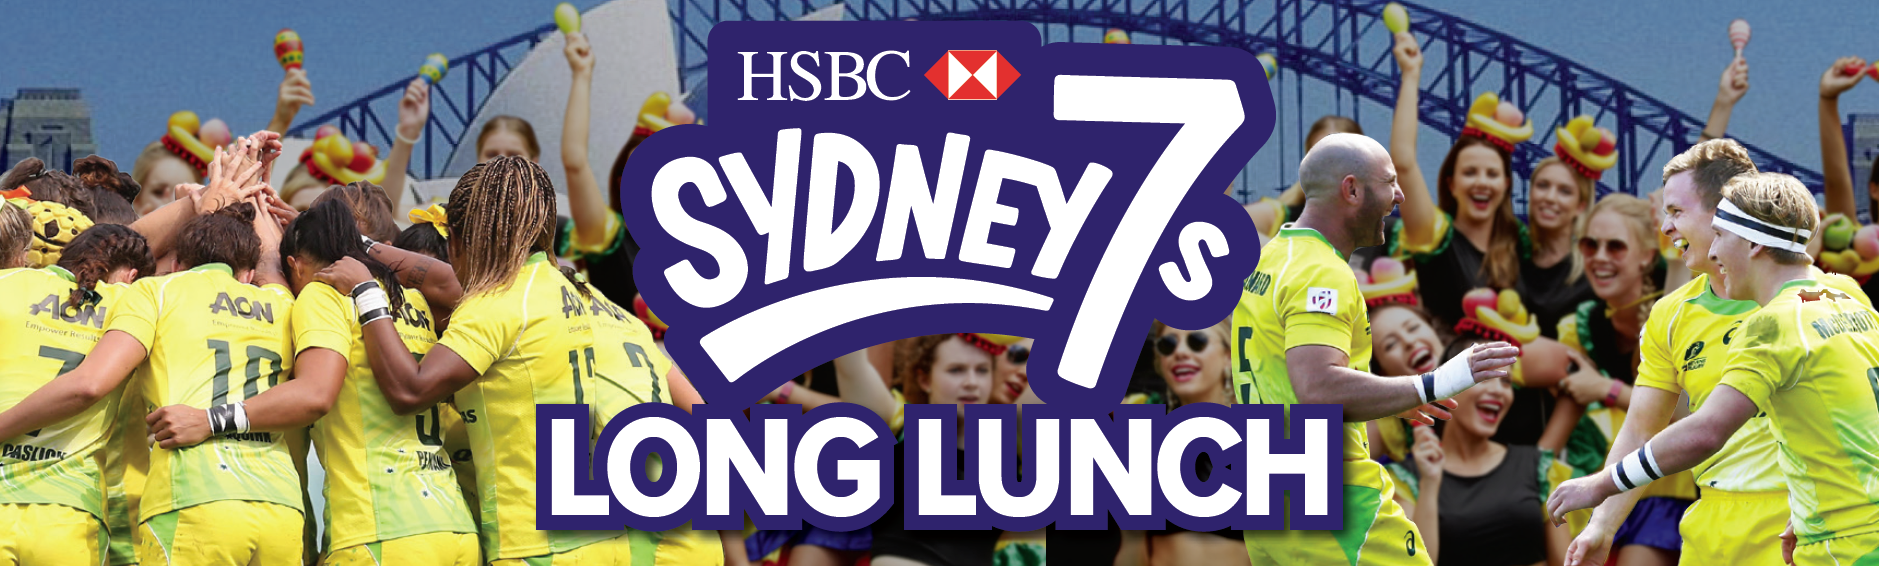 The HSBC Sydney 7s Long Lunch